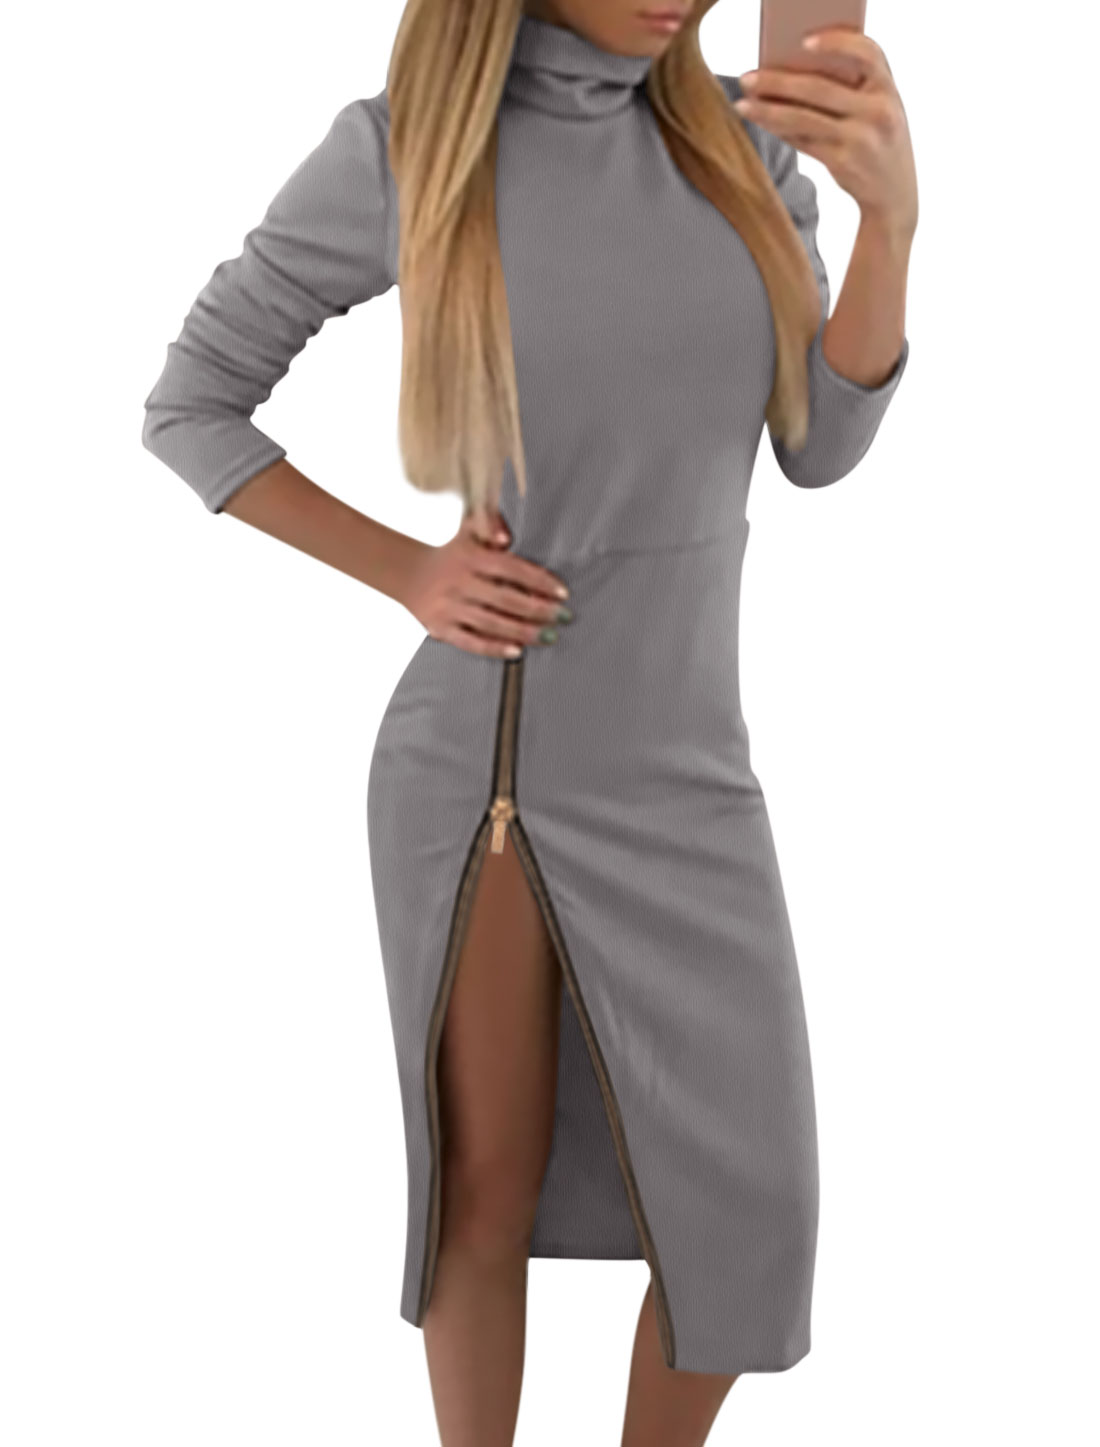 Women Turtle Neck 3/4 Sleeves Exposed Side Zipper Midi Dress Gray M